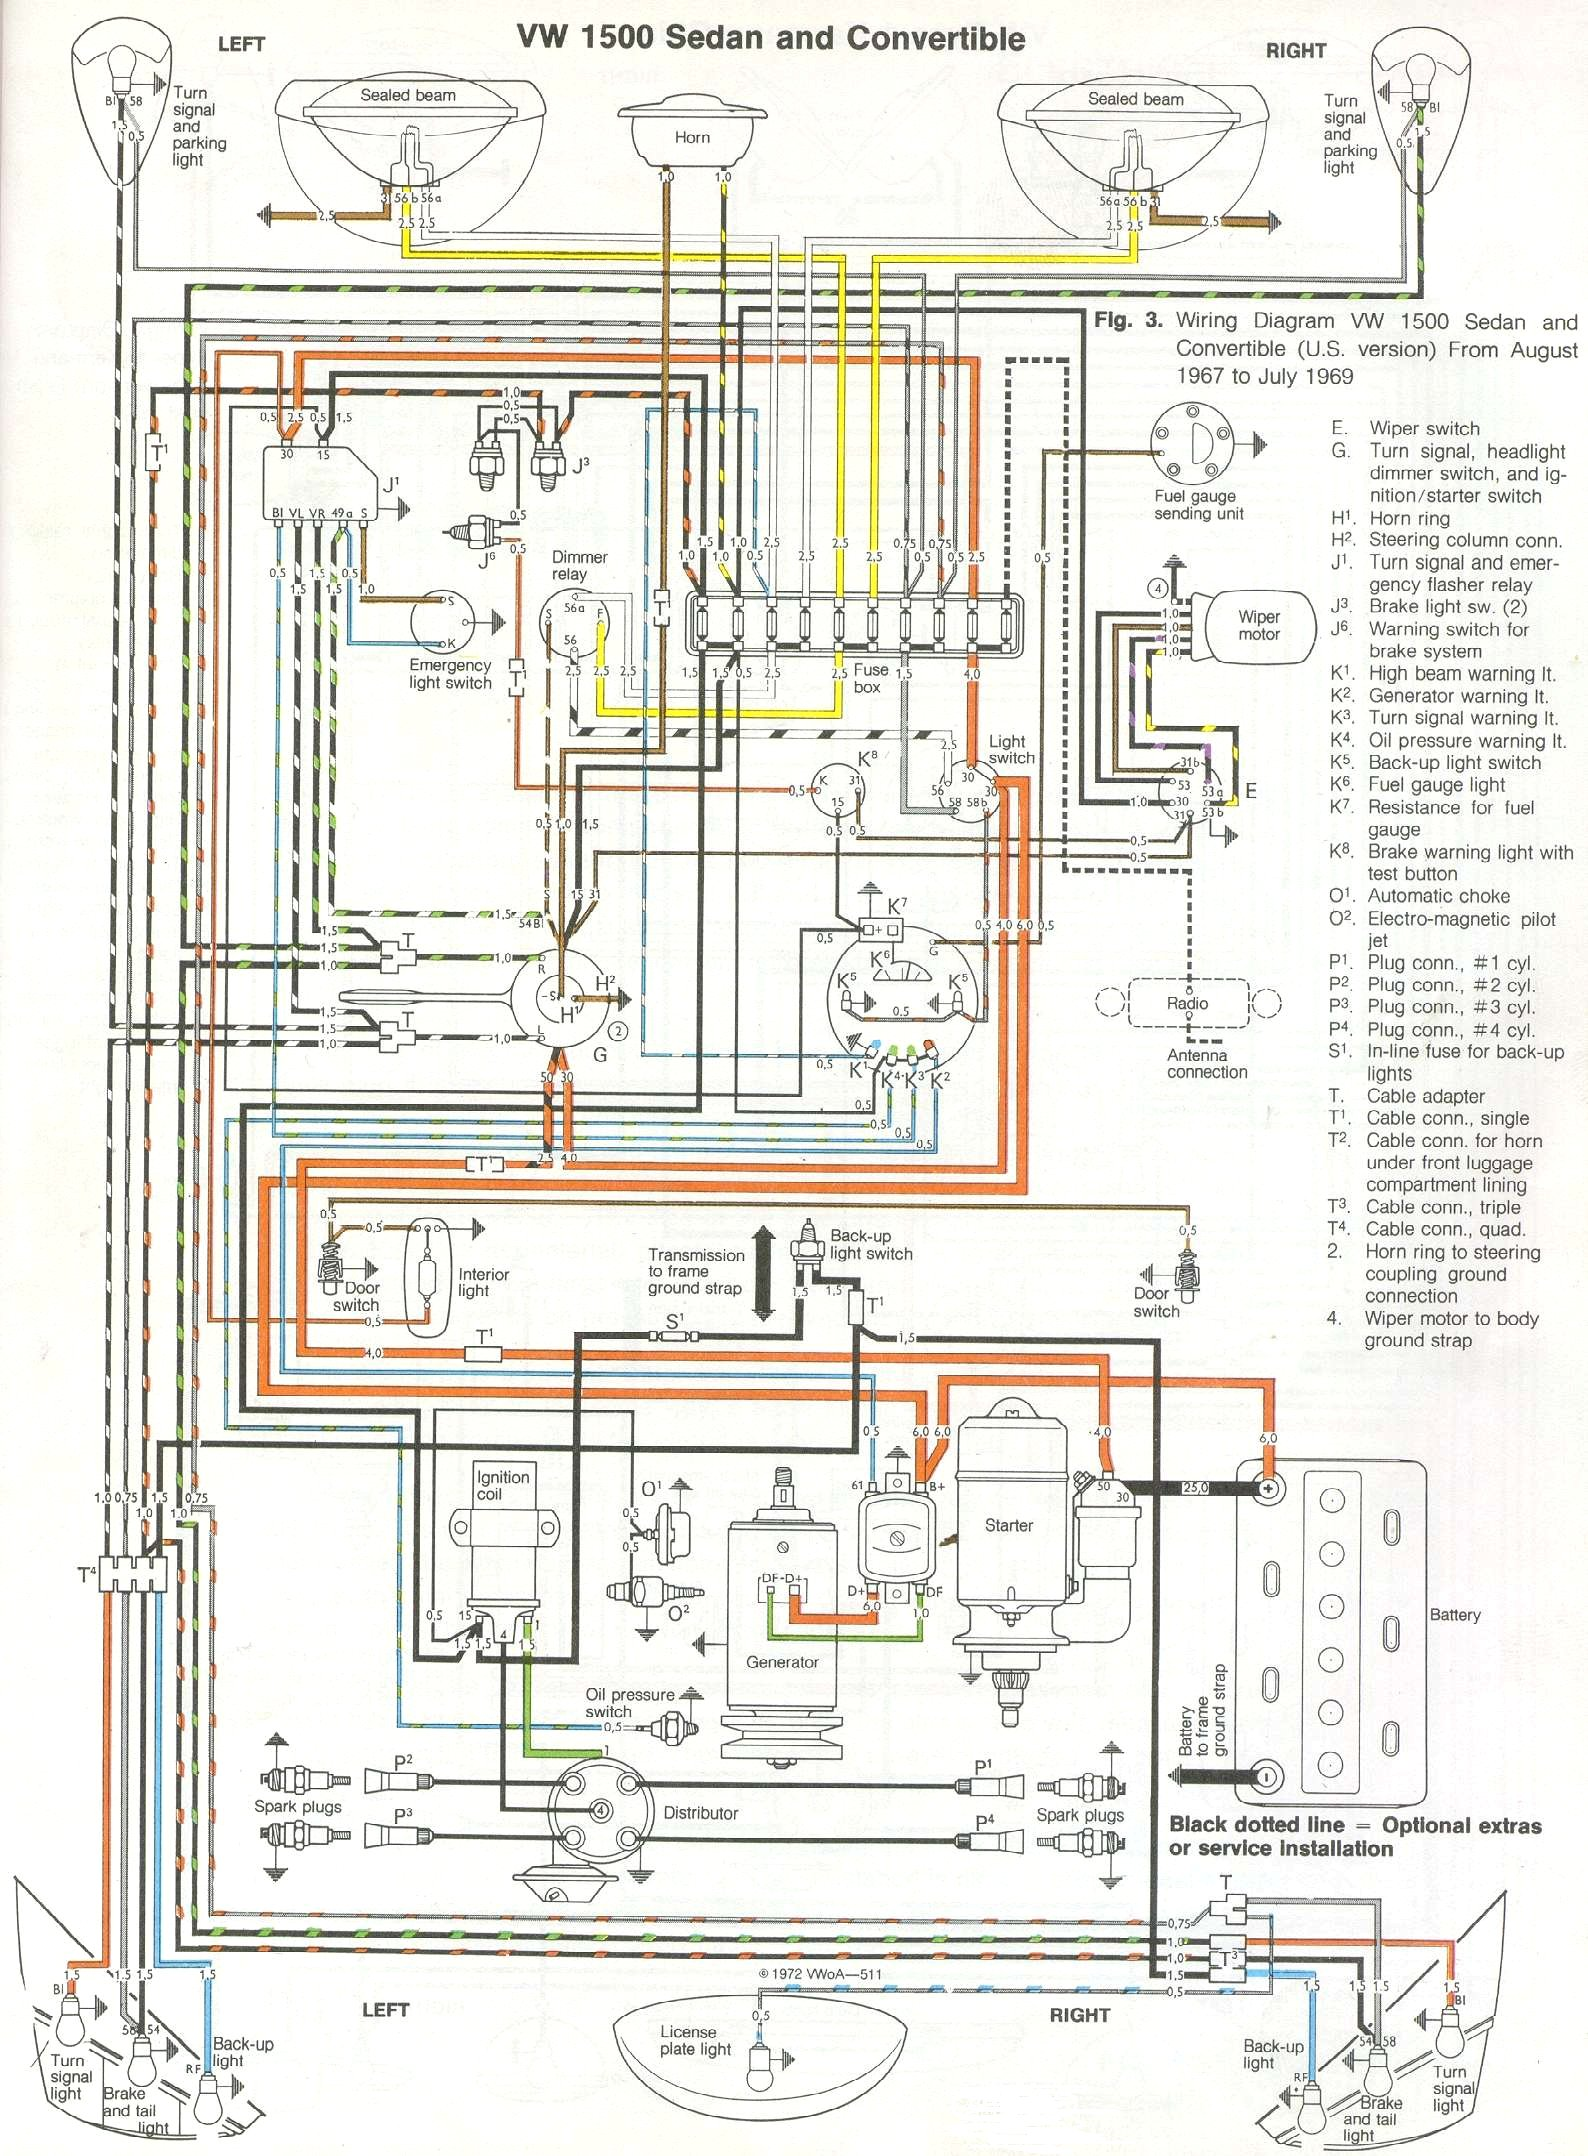 bug_6869 1968 69 beetle wiring diagram (usa) thegoldenbug com vw bus samba wiring diagram at bayanpartner.co